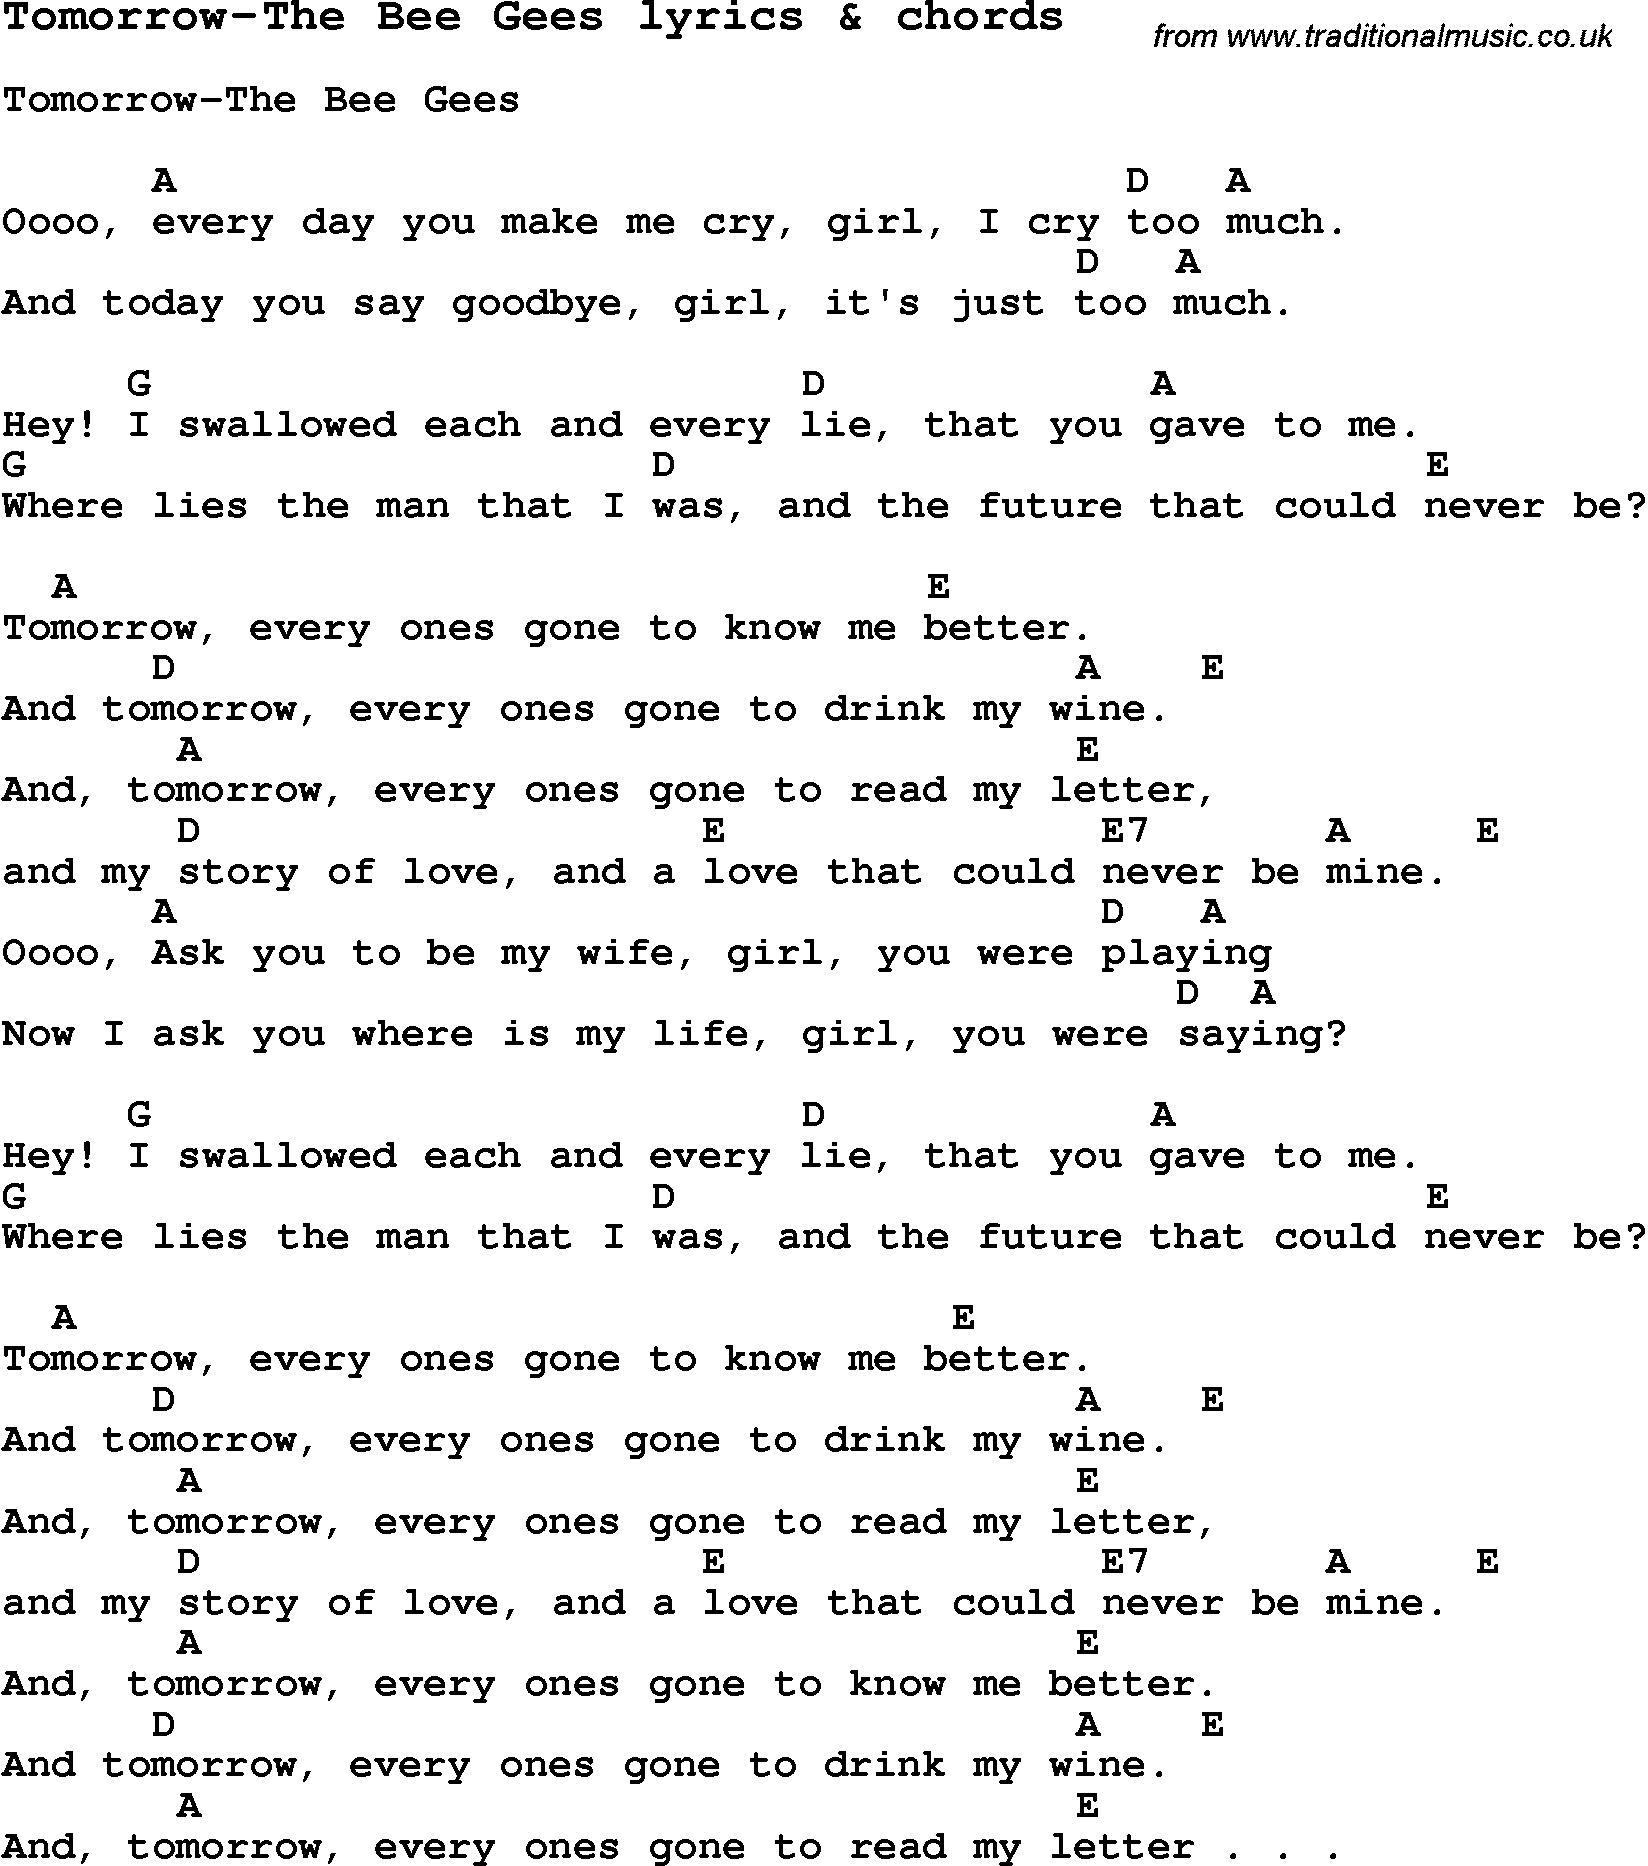 love song lyrics for tomorrow the bee gees with chords